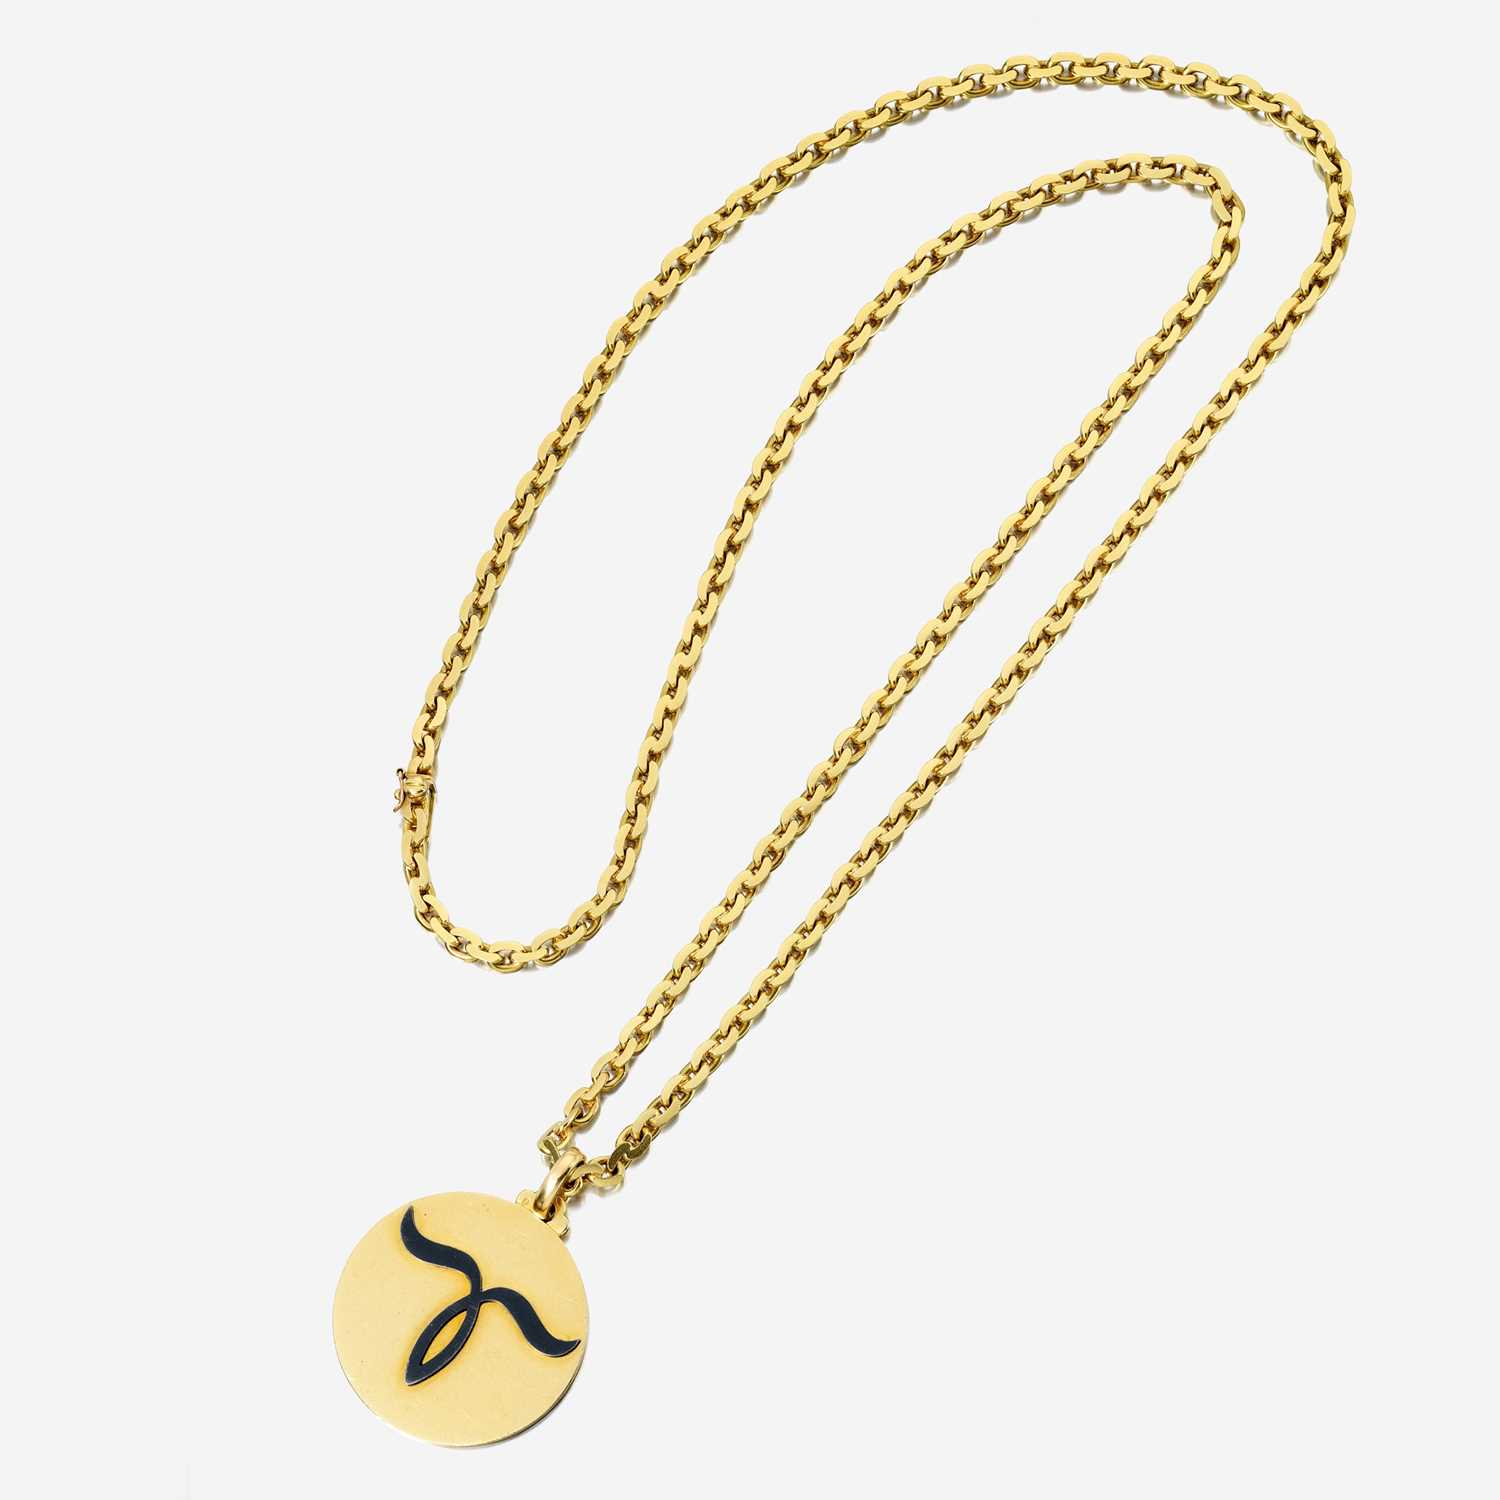 Lot 44 - An eighteen karat gold zodiac pendant necklace, Bulgari